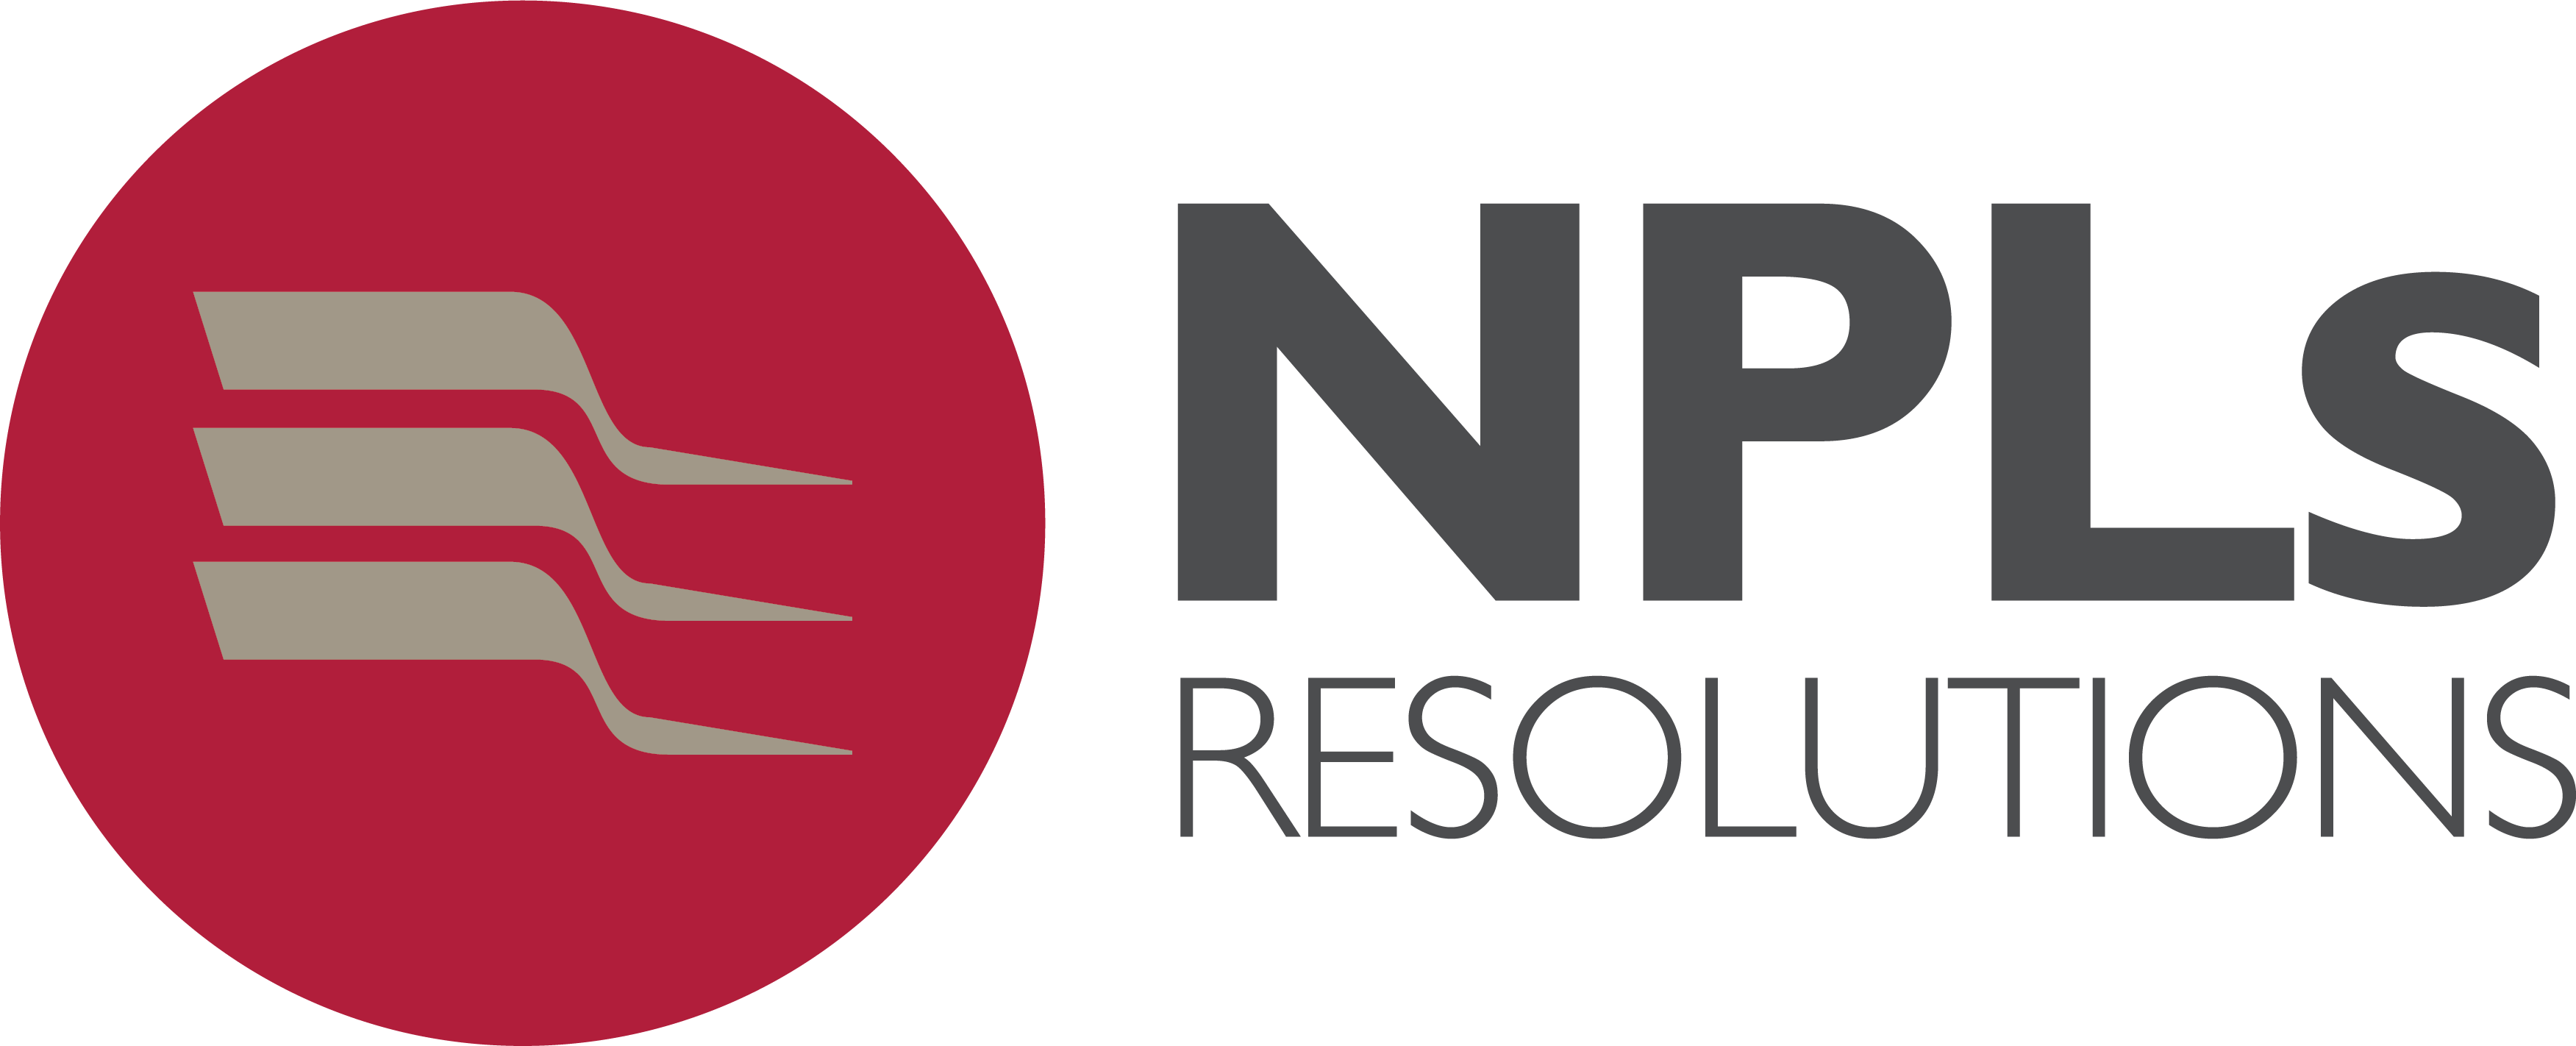 NPL Resolution